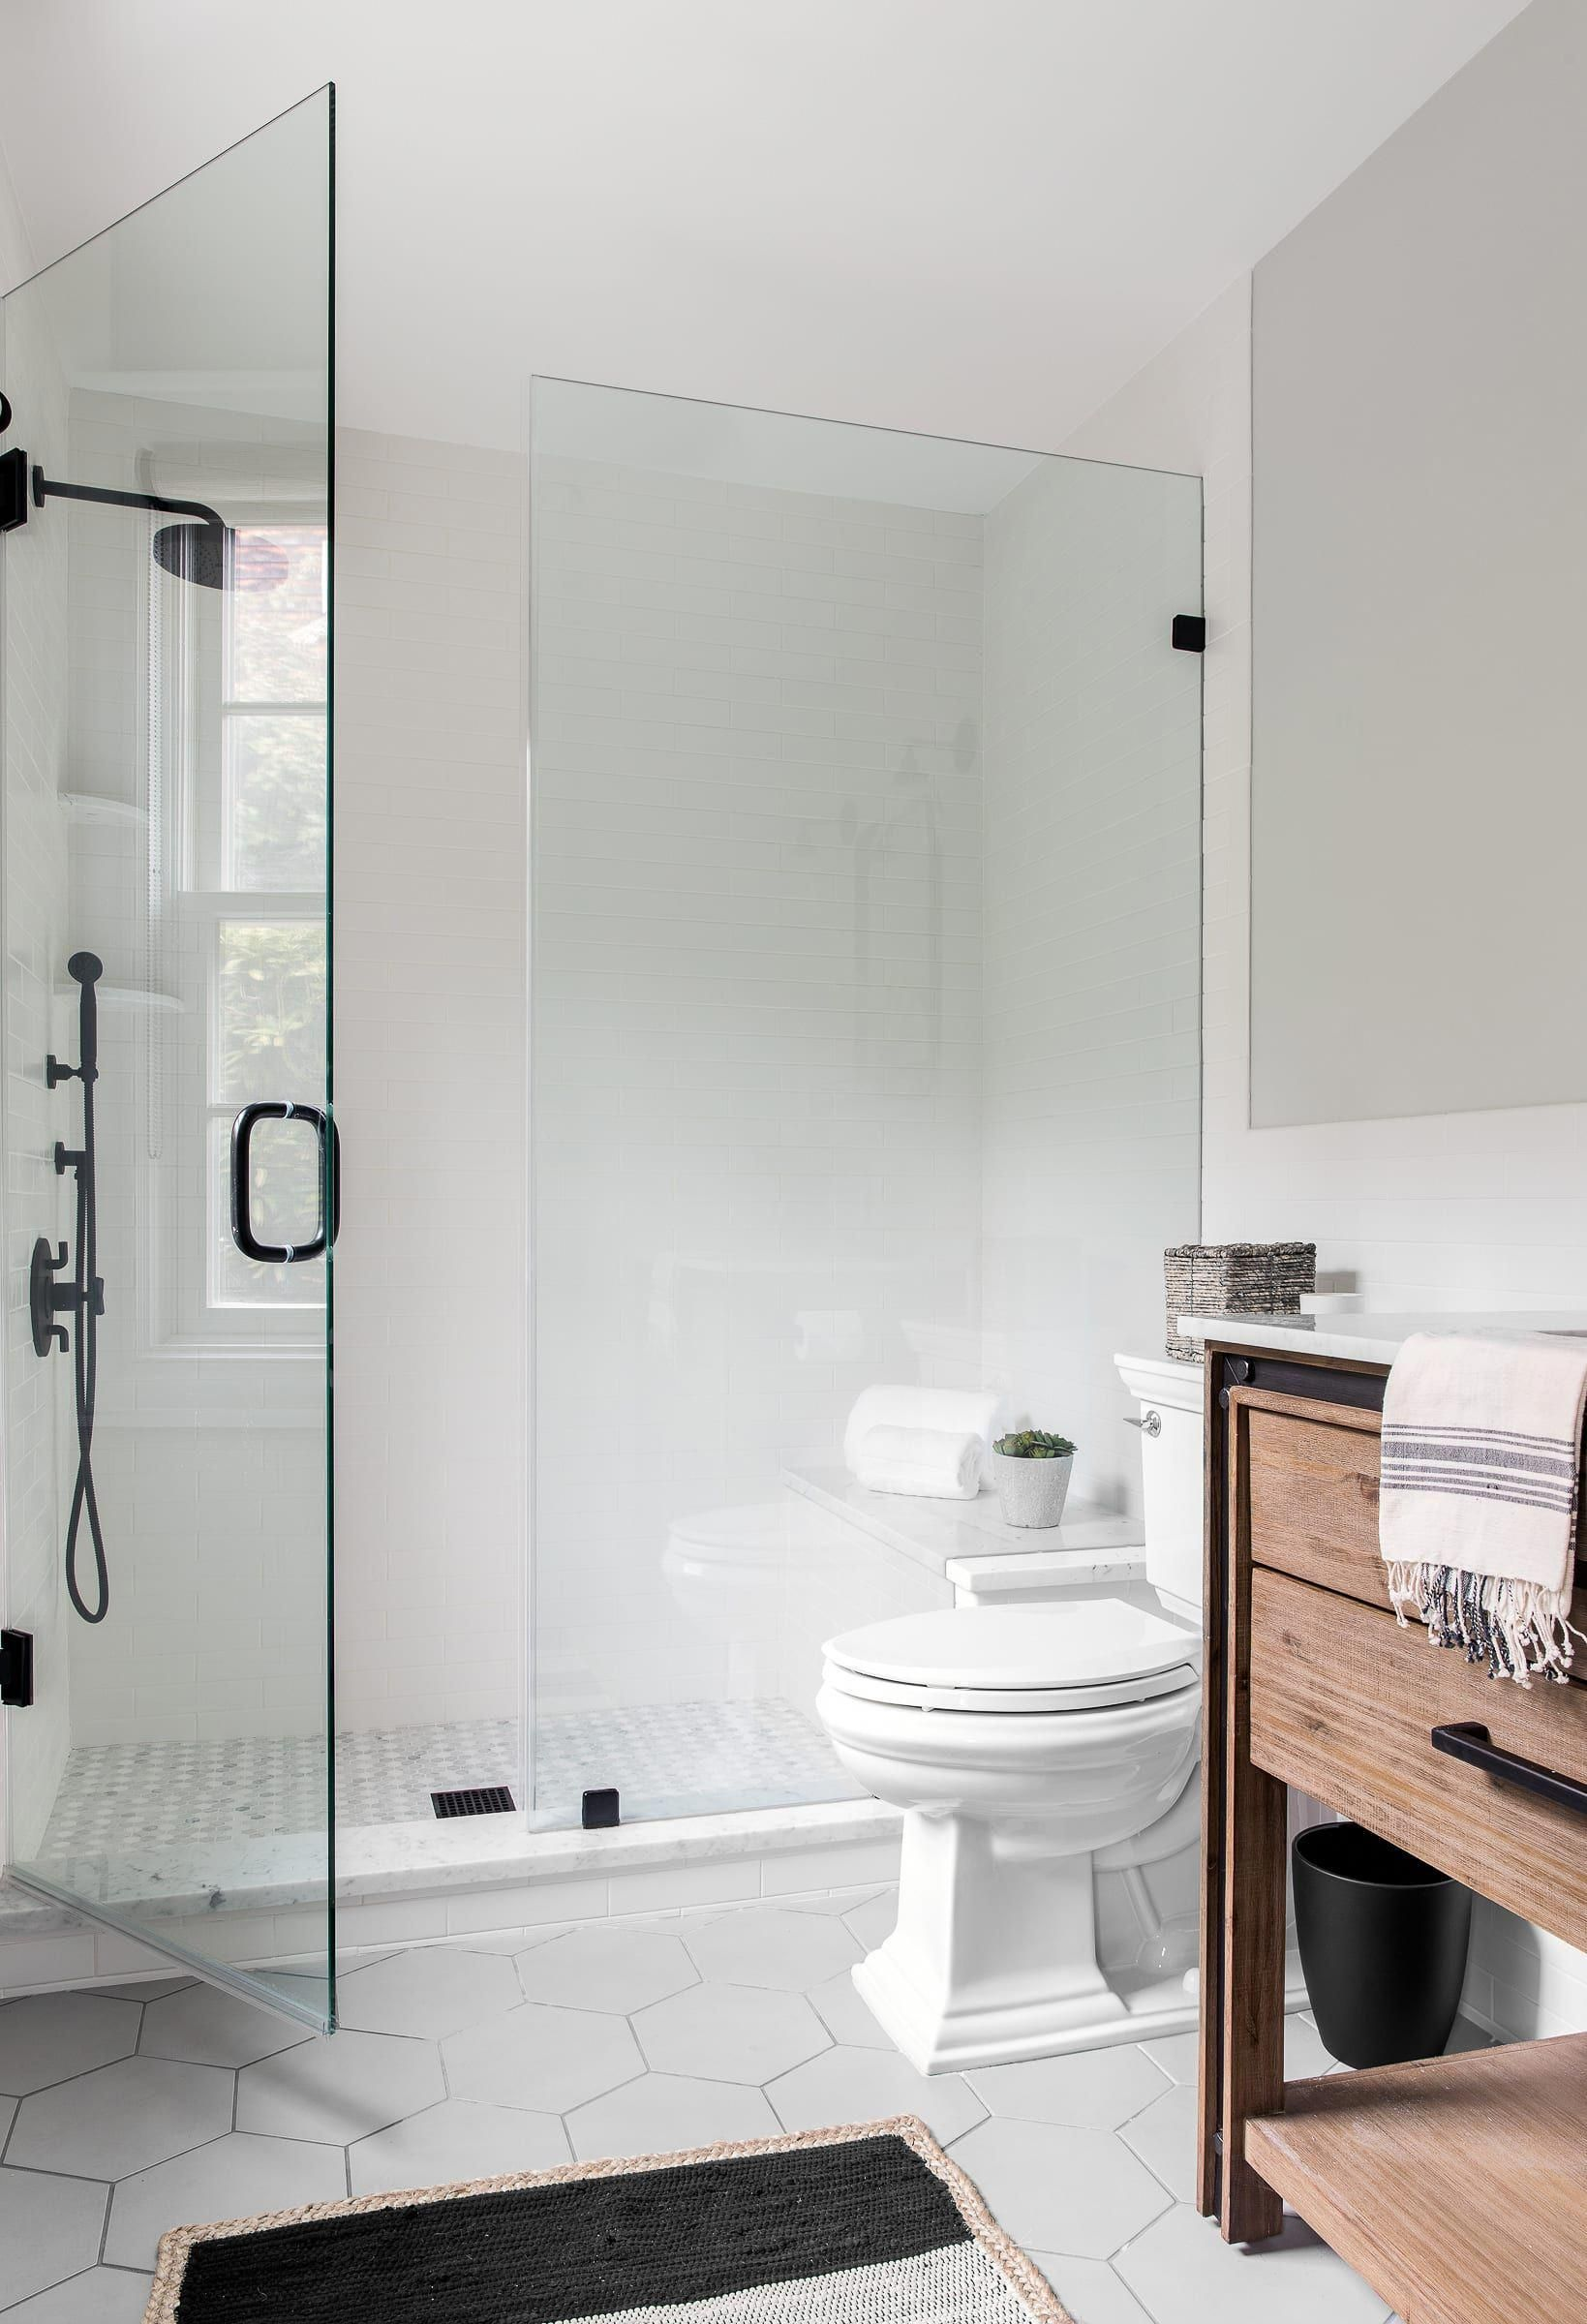 This Could Certainly Get Your Interest Bathroom Remodel Flooring Bathroom Counter Decor Bathrooms Remodel Large Bathrooms [ jpg ]